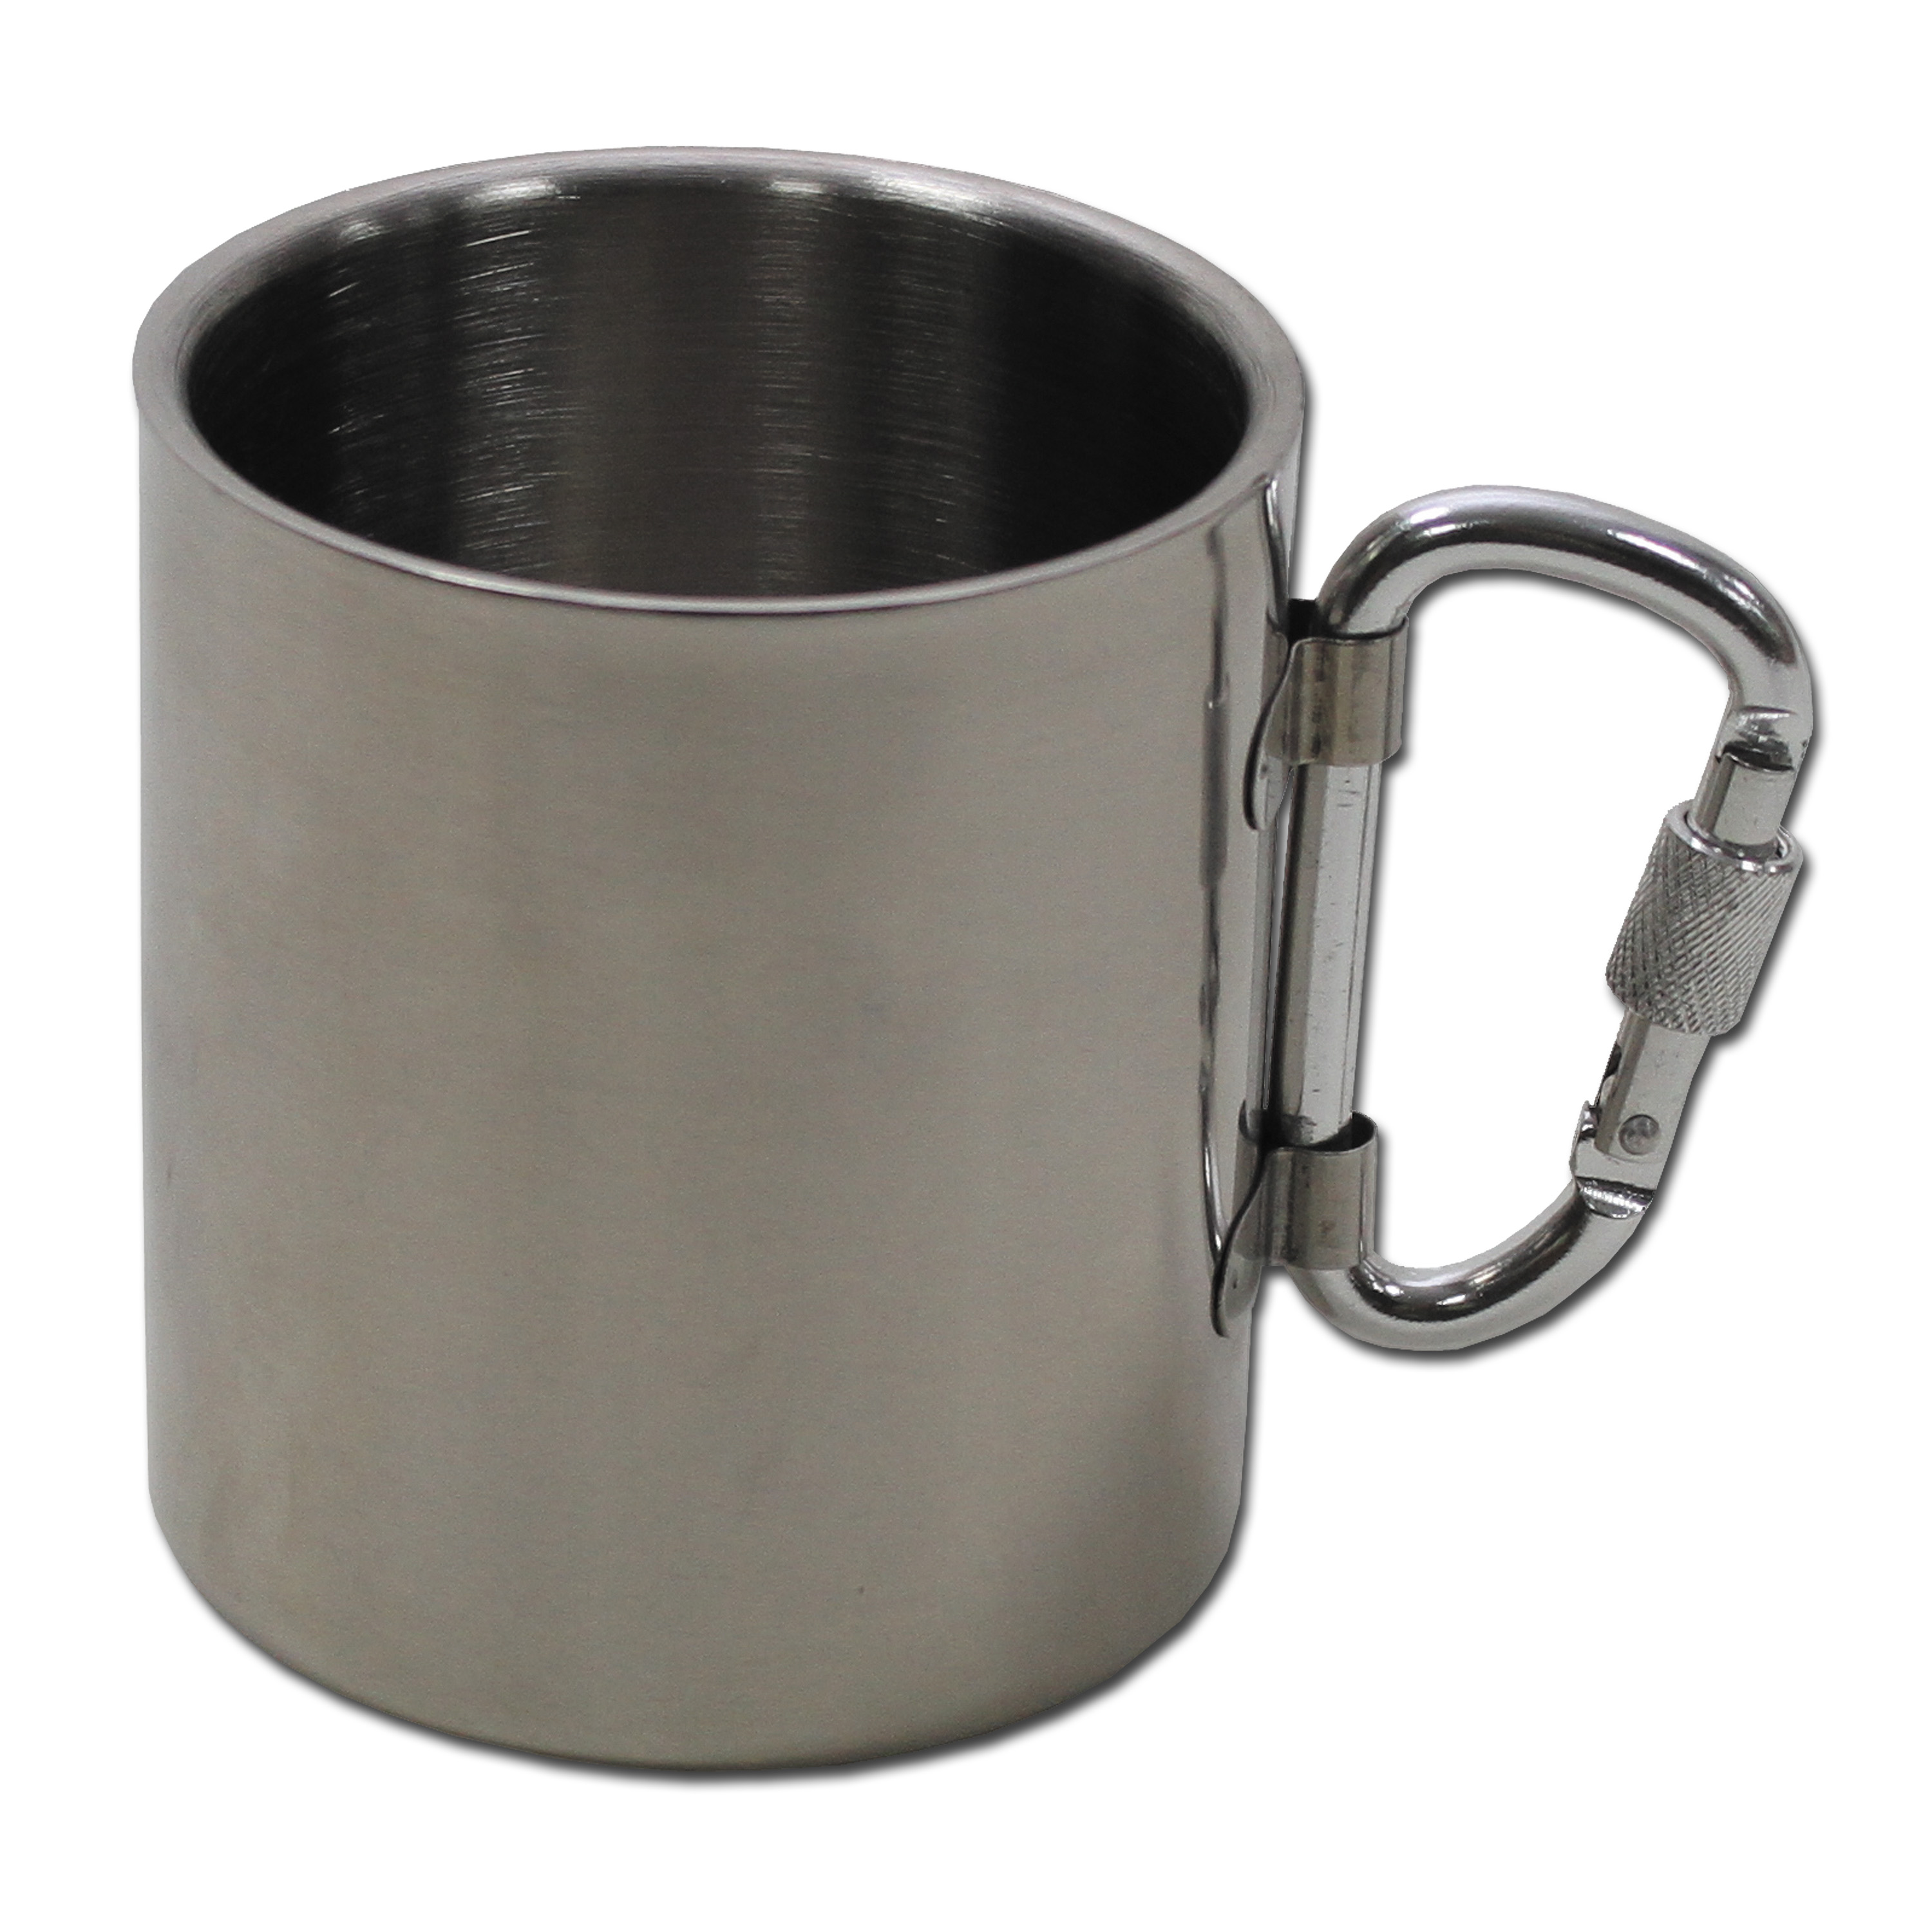 Stainless Steel Mug with Carabiner 300ml